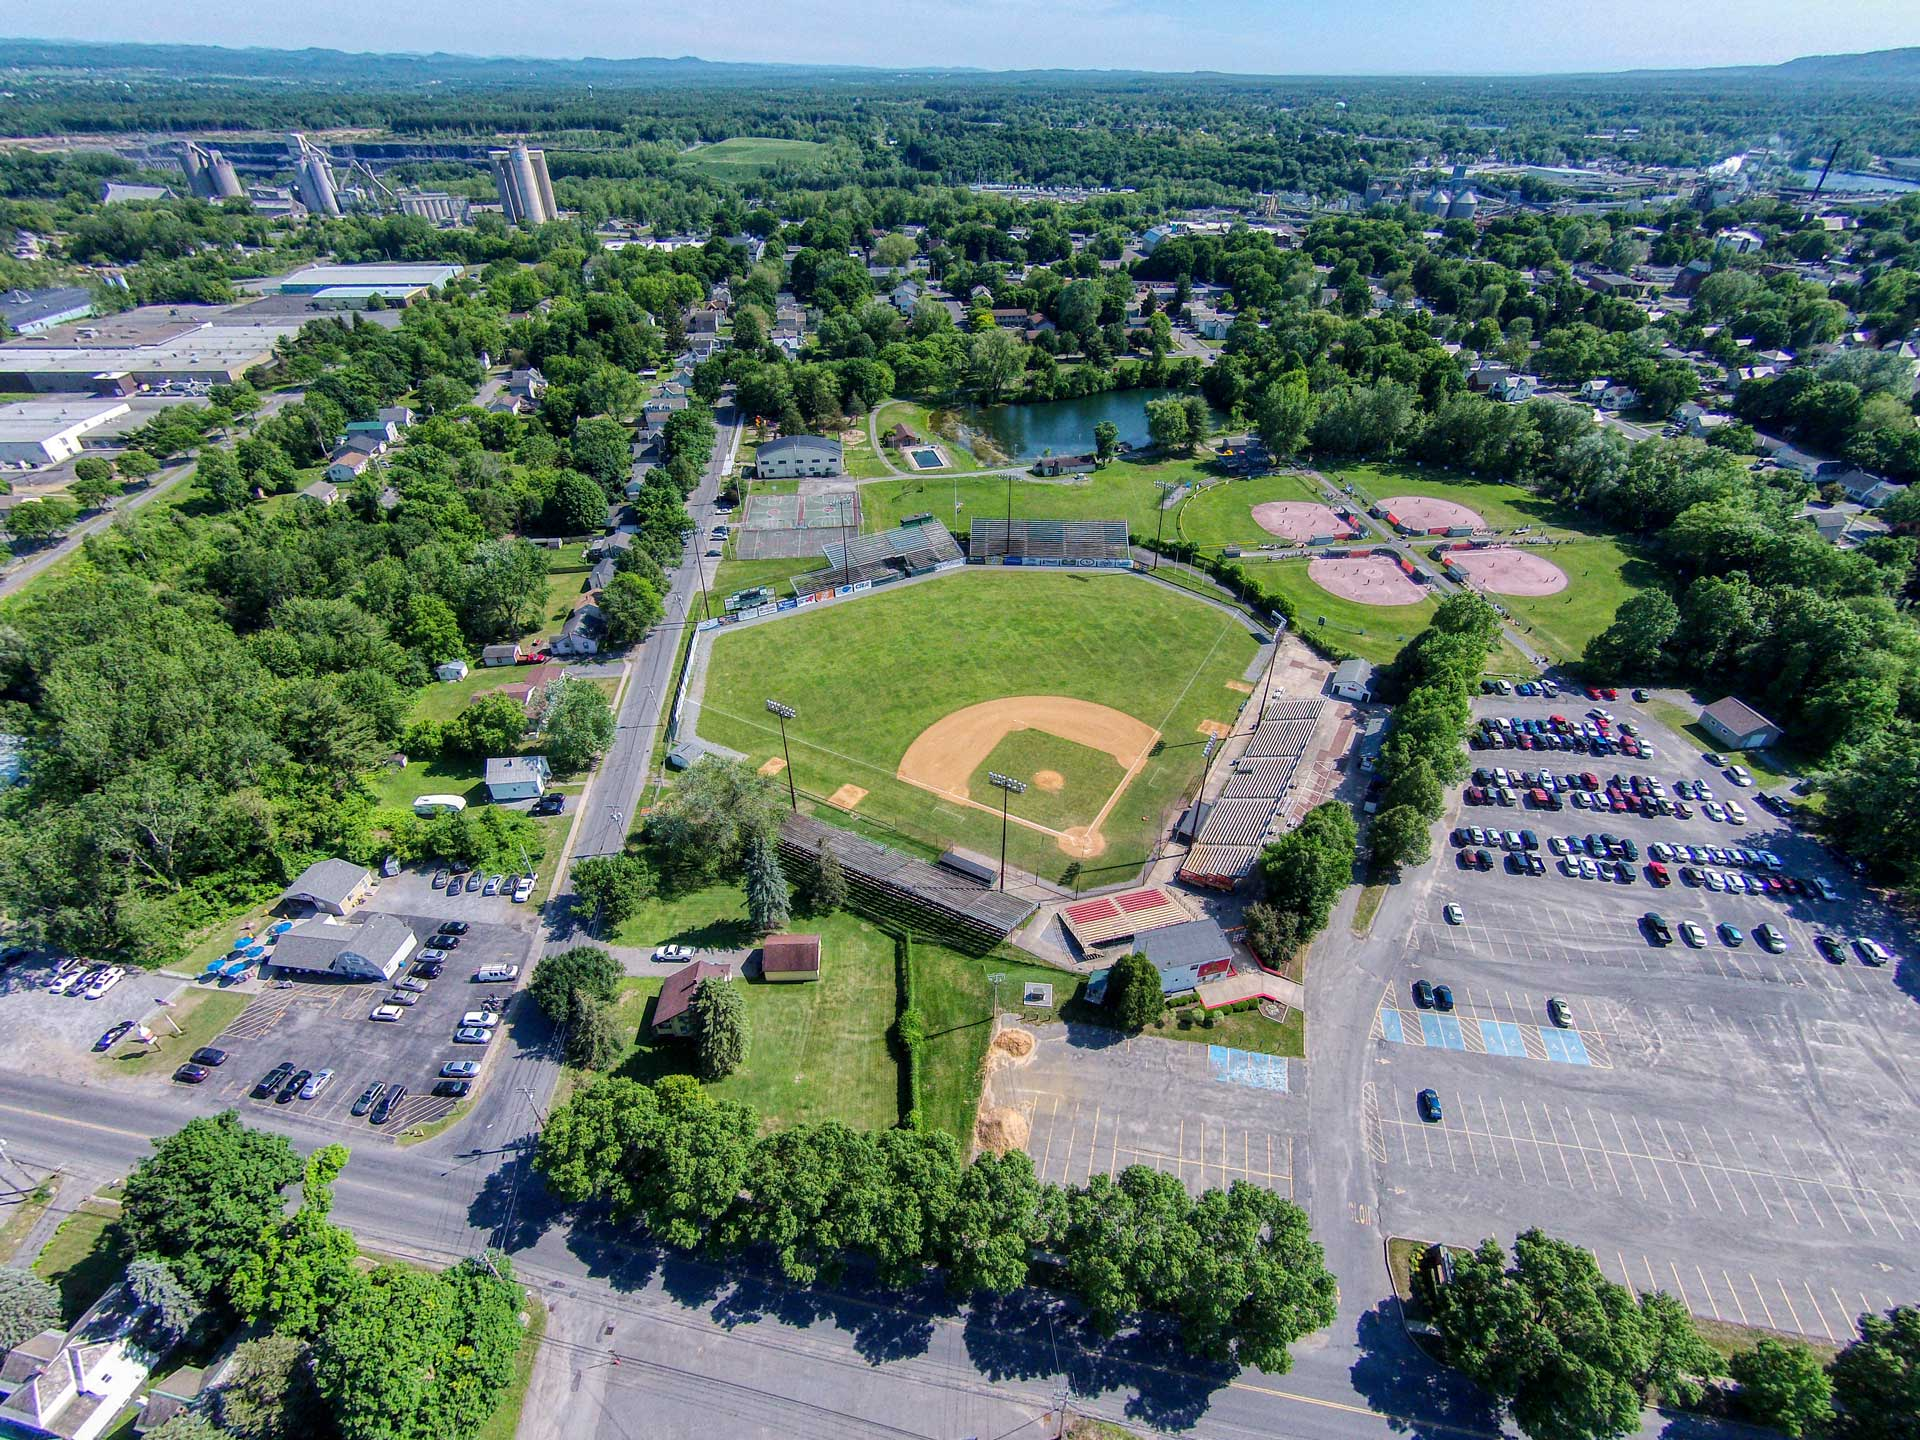 Aerial view of East Field in Glens Falls, New York, home of the Glens Falls Dragons Baseball team.